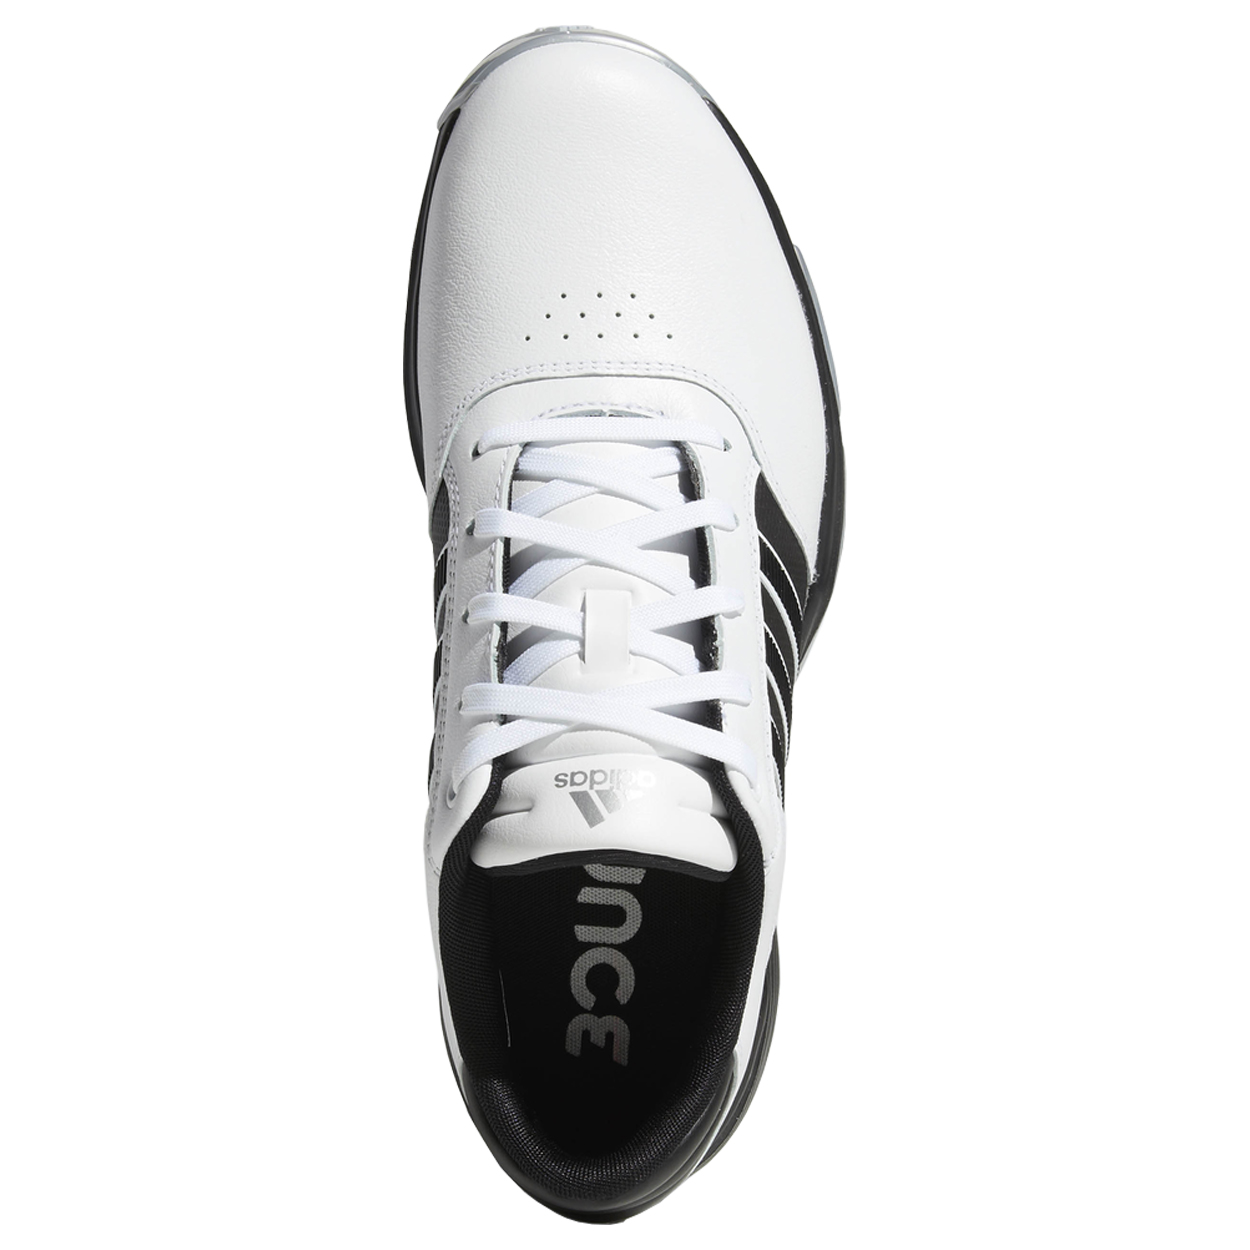 Adidas-Men-039-s-360-Bounce-Golf-Shoes-Brand-New thumbnail 9